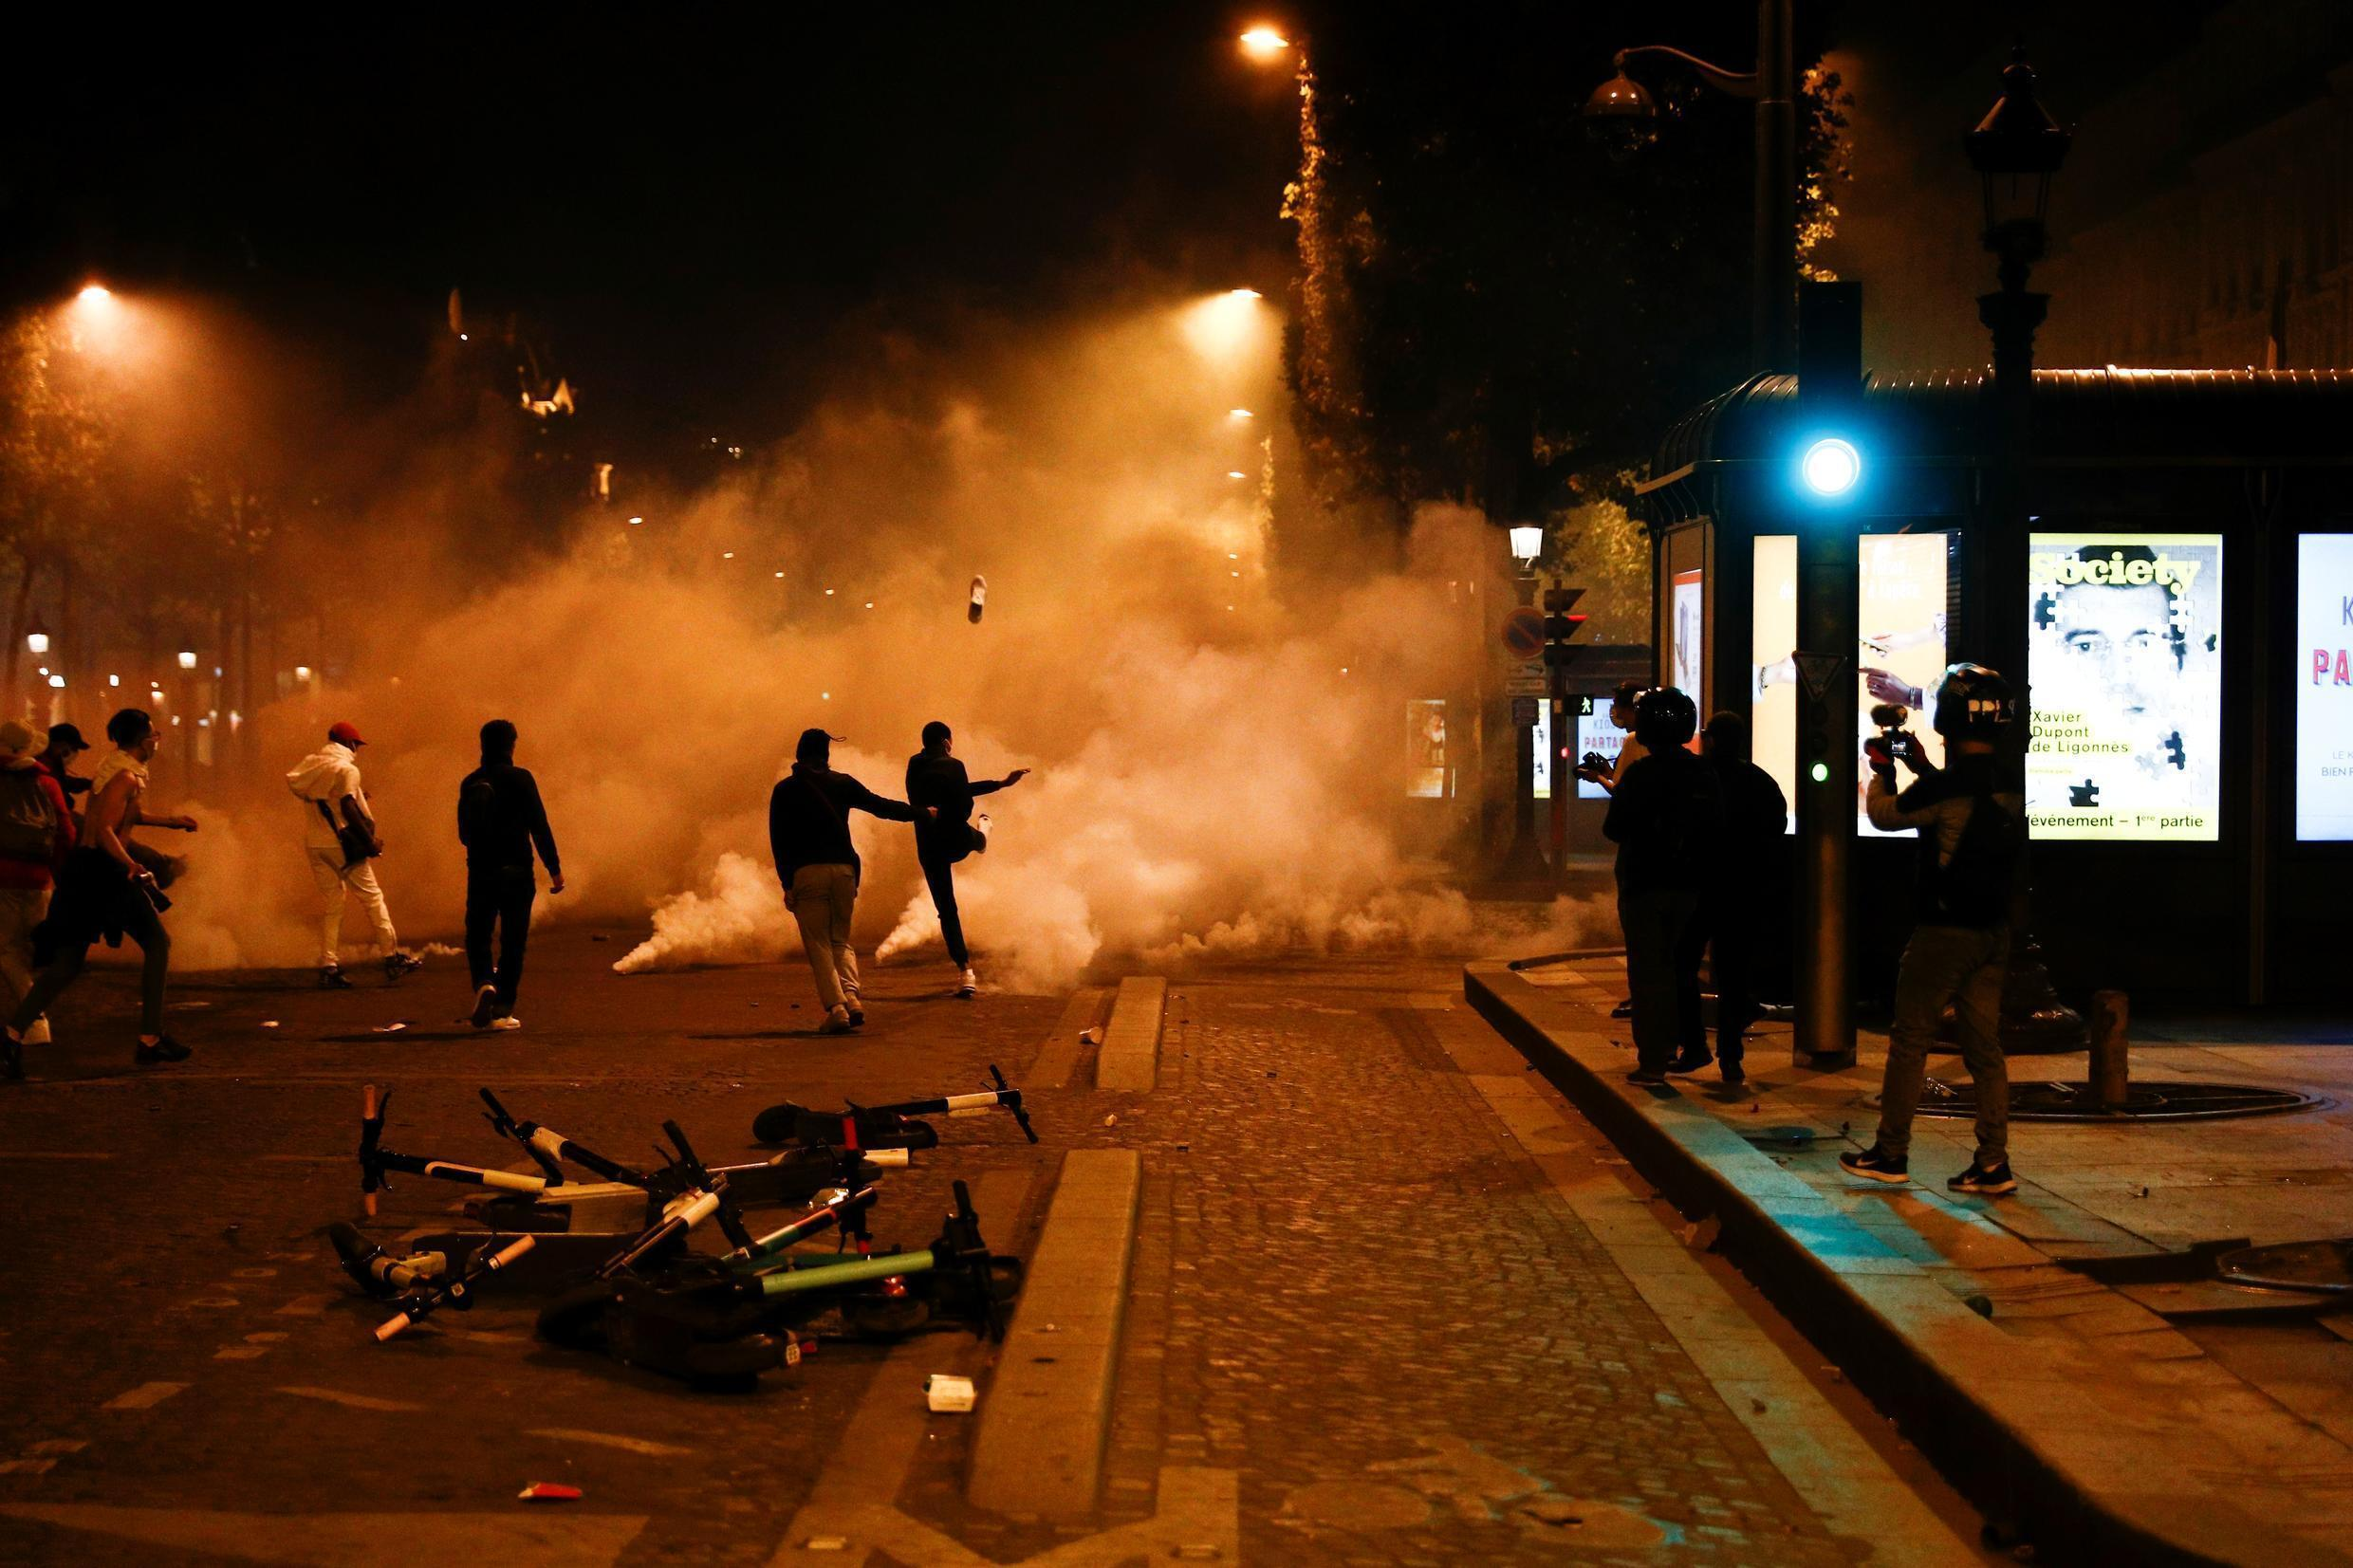 Police fire tear gas on PSG supporters on the Avenue des Champs-Elysées, on 23 August, 2020, following the team's defeat in the Champions League final.